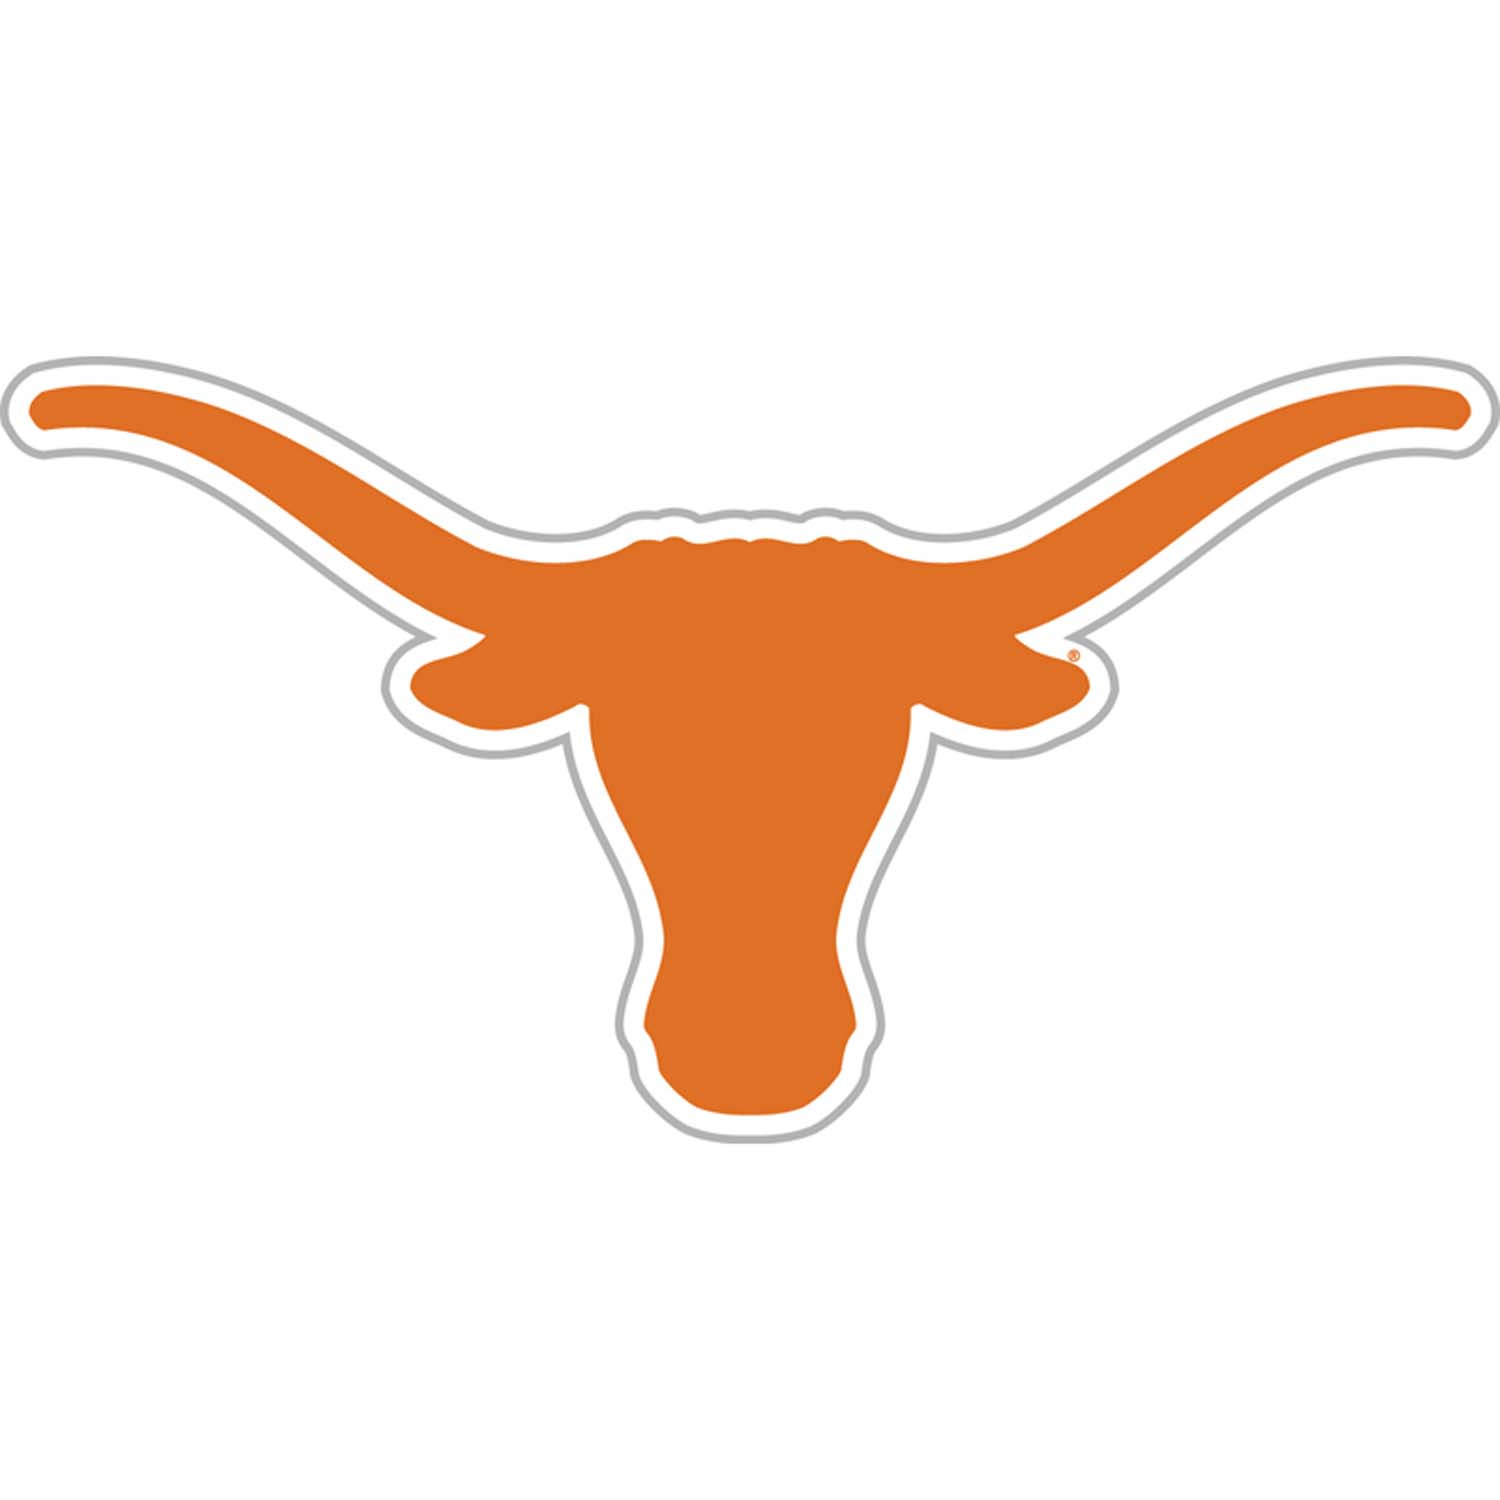 Longhorn logos clipart banner free library Free Texas Longhorns Cliparts, Download Free Clip Art, Free Clip Art ... banner free library